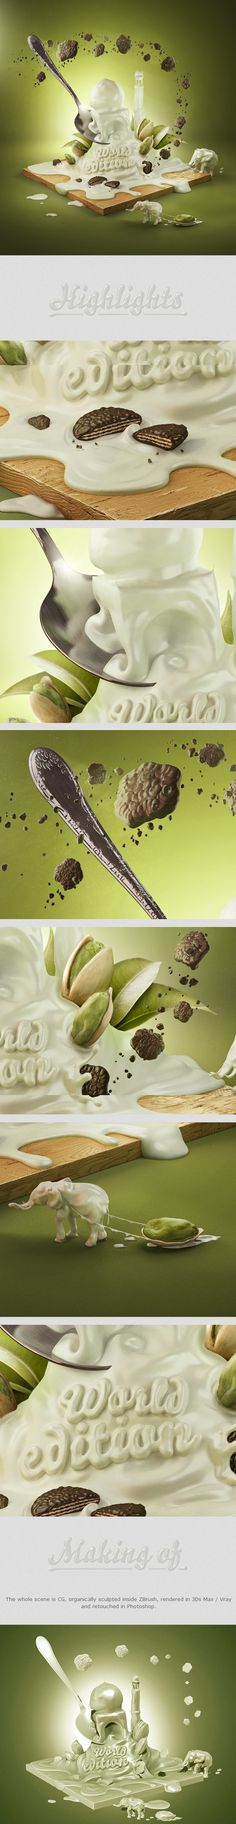 Yogurt advertising on Behance